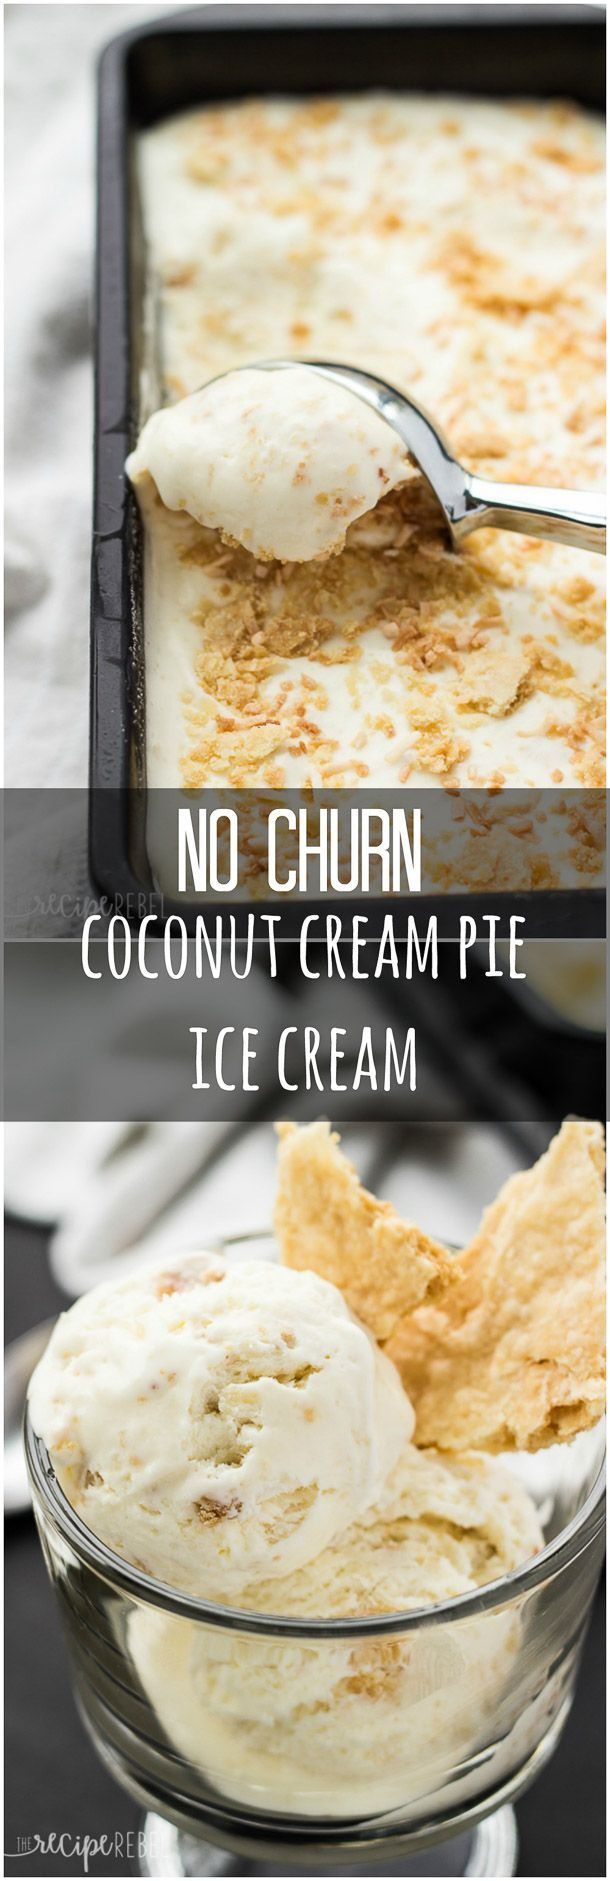 No Churn Coconut Cream Pie Ice Cream: A simple, 8-ingredient ice cream (only 5 if you use store-bought pie crust!) that tastes just like coconut cream pie! An easy, no-bake, no-stove, no-churn, but totally delicious summer treat! www.thereciperebel.com